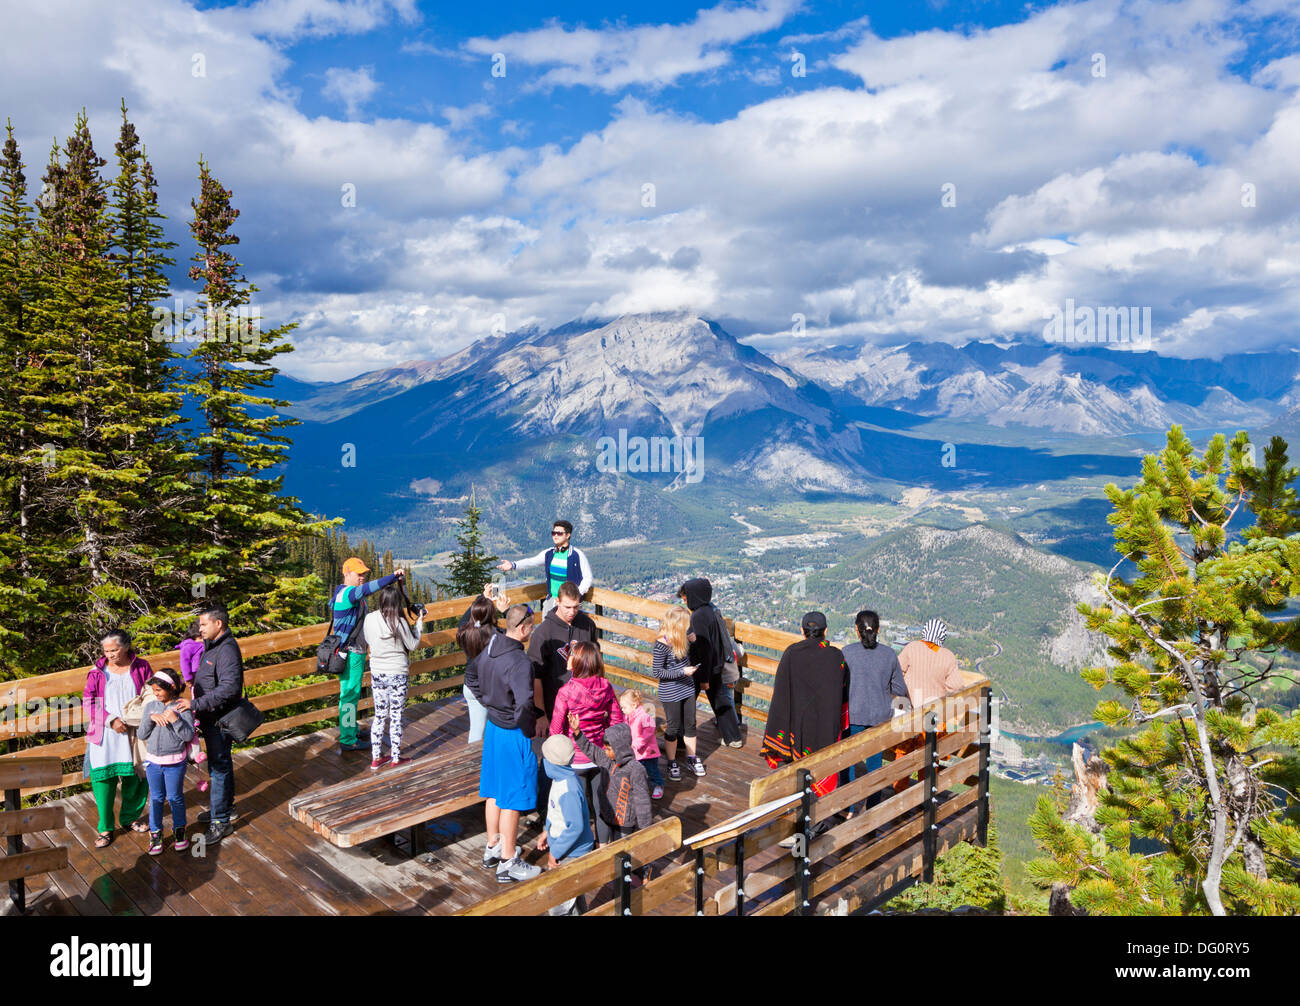 Stock photo visitors on a viewing platform on sulphur mountain summit overlooking banff national park alberta canadian rockies canada